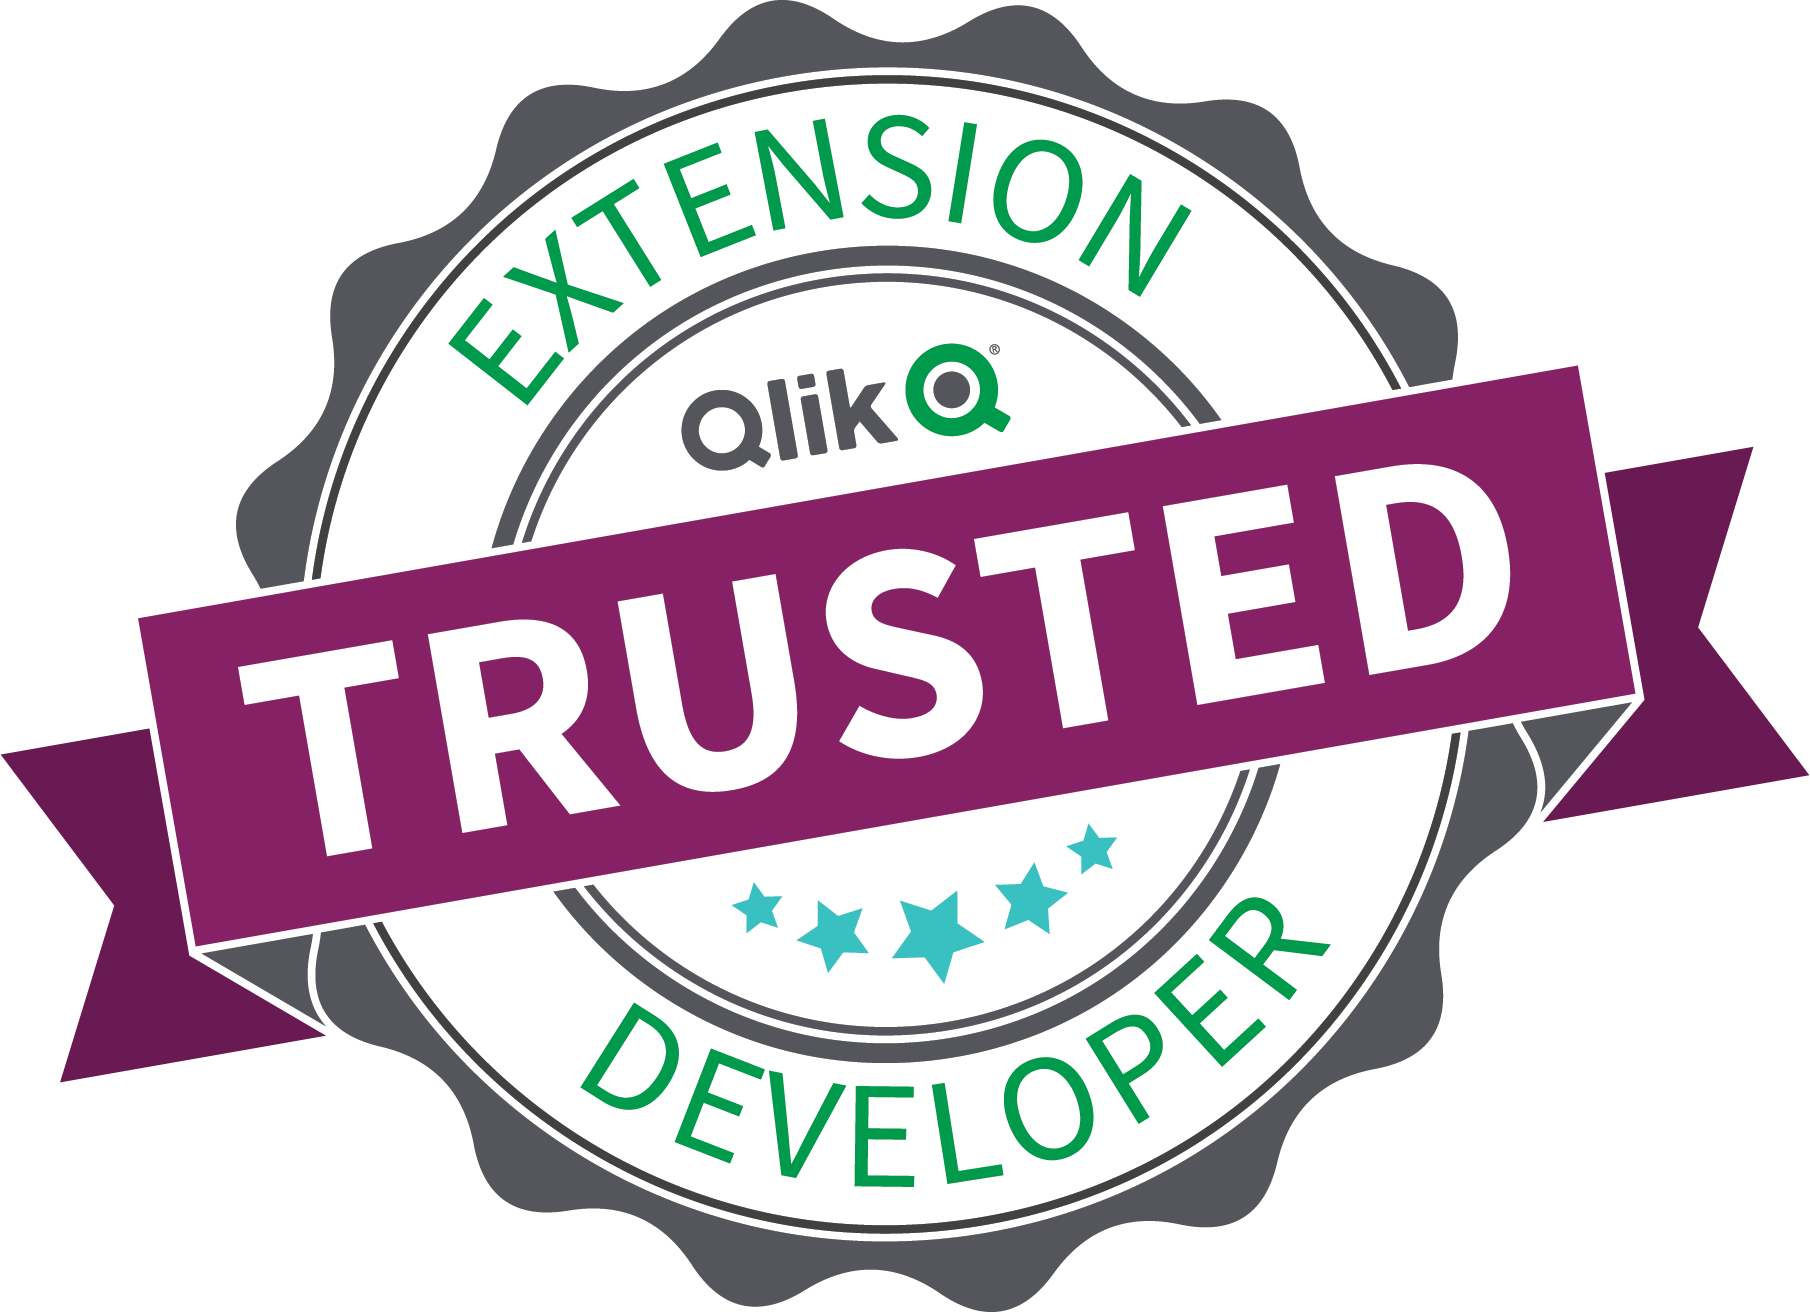 Komment is certified by Qlik